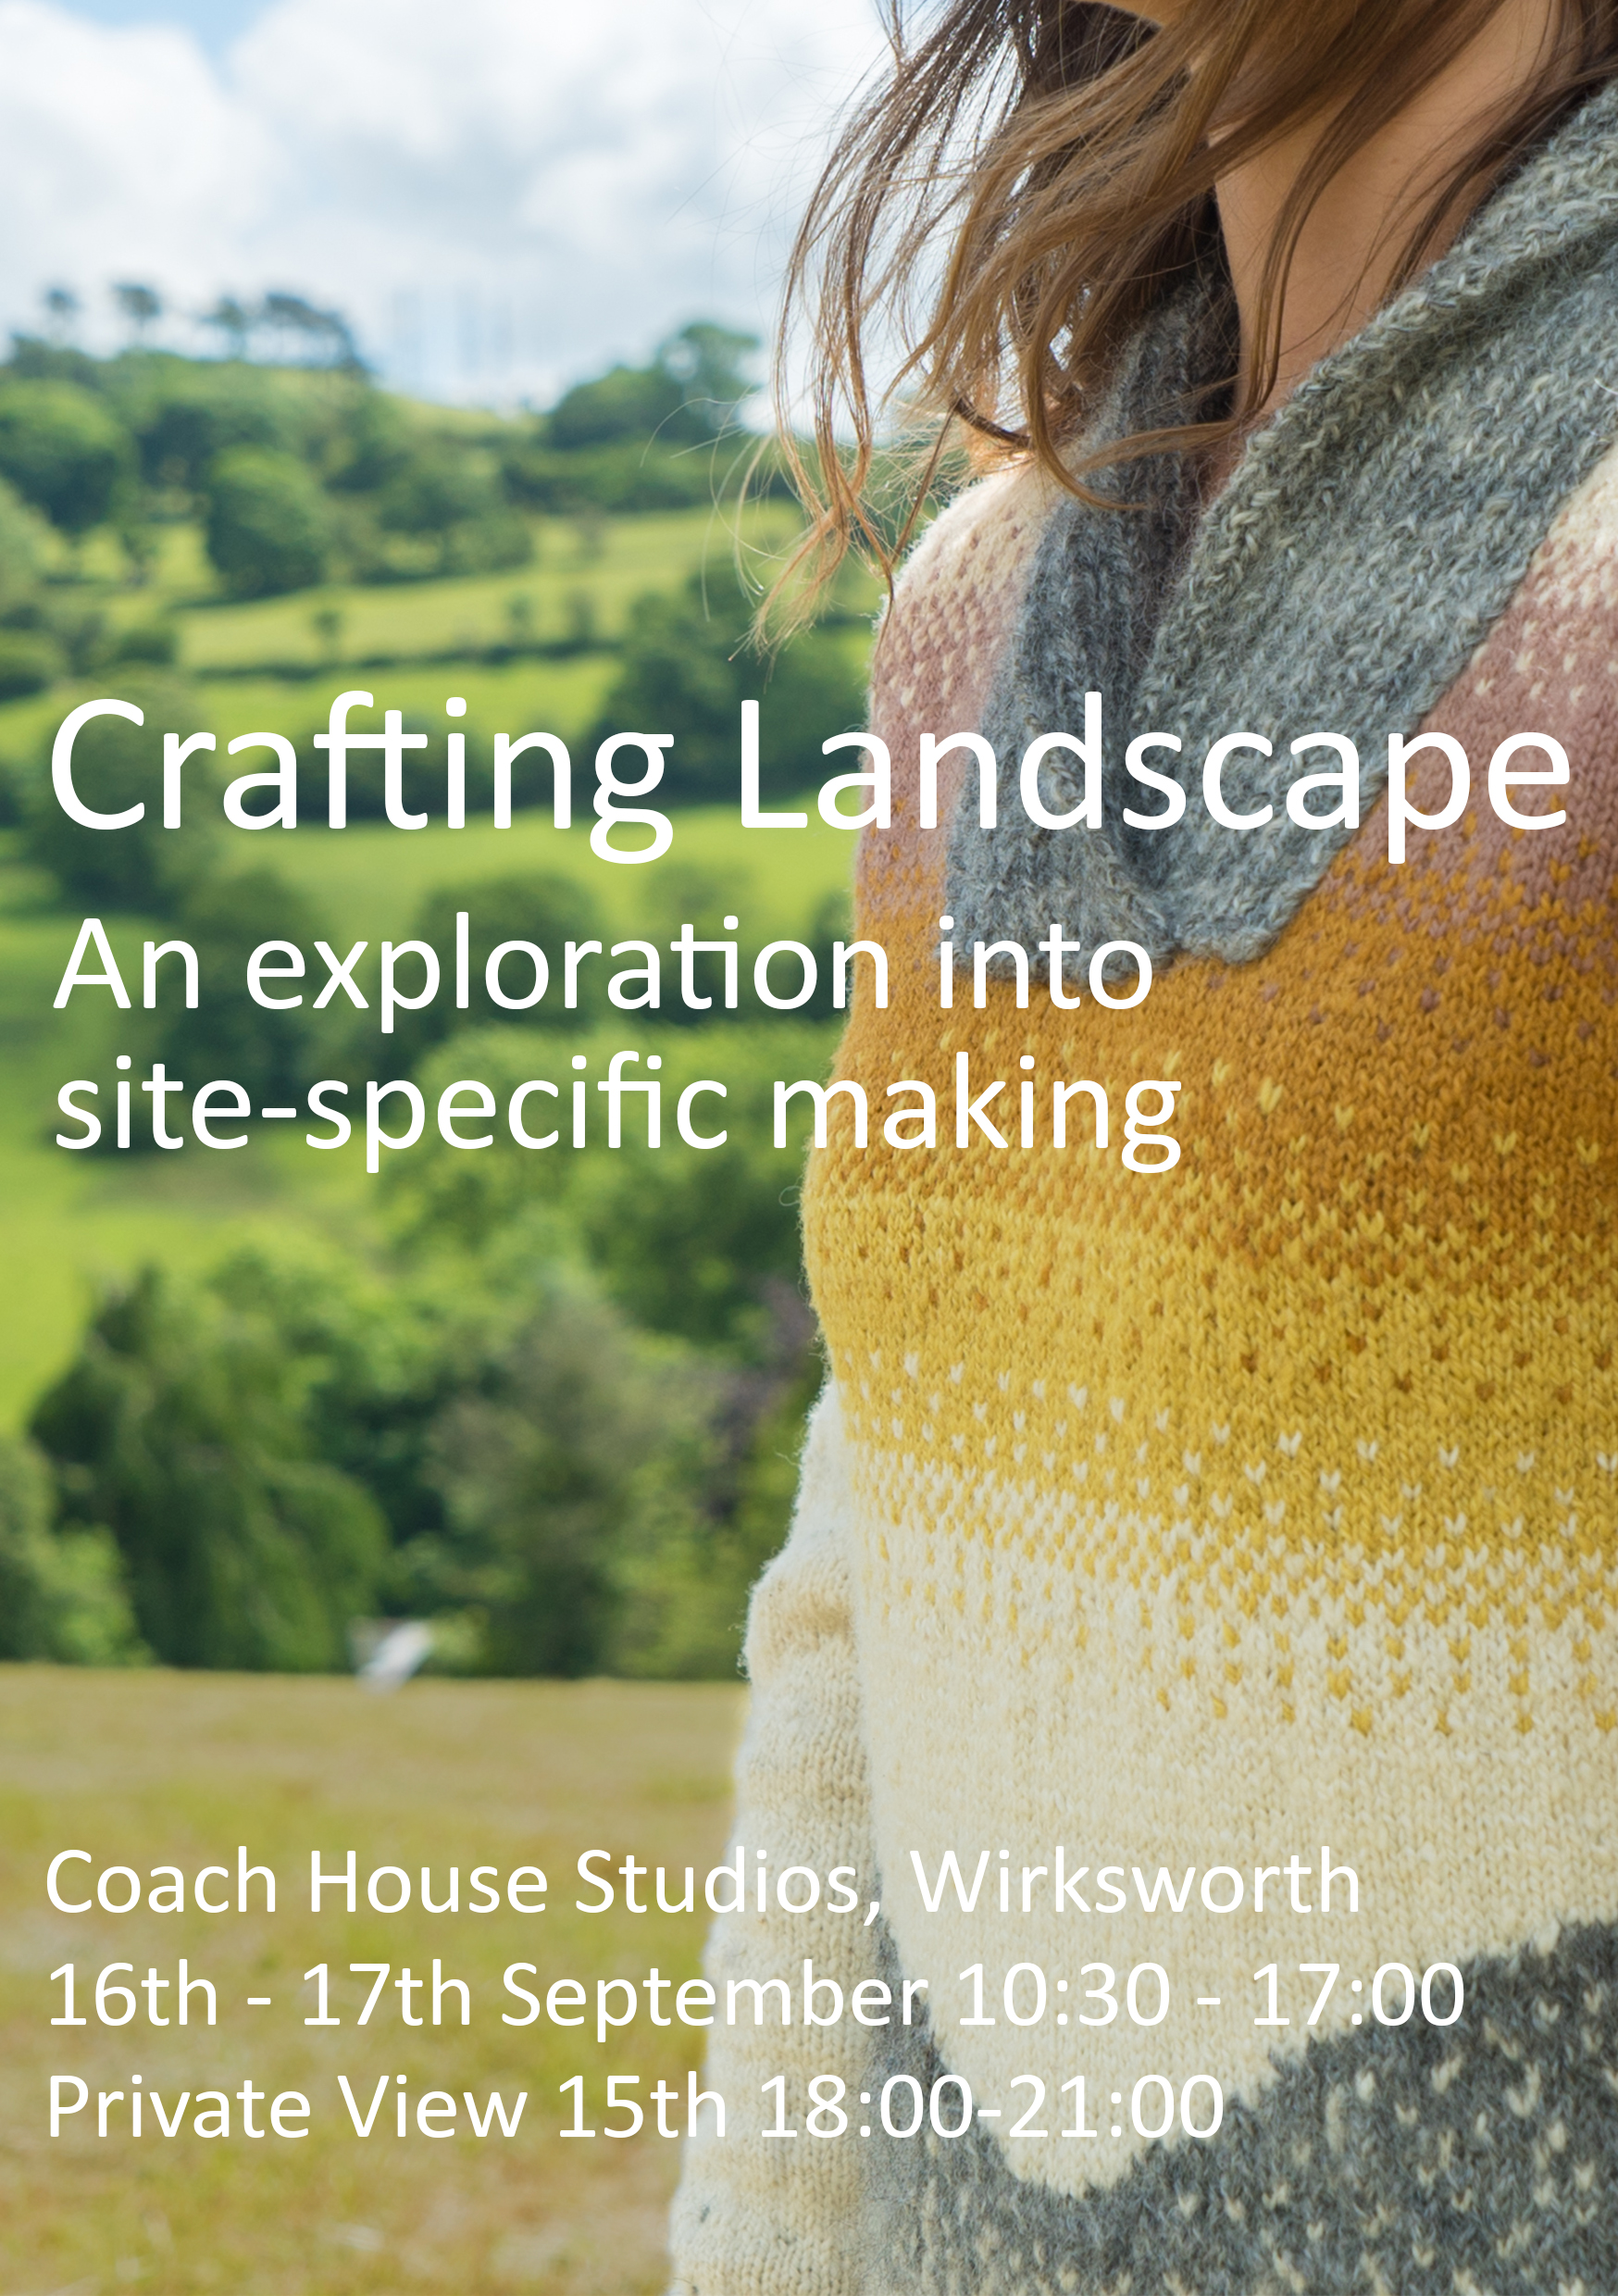 Crafting Landscape: An Exploration into Site-Specific Making